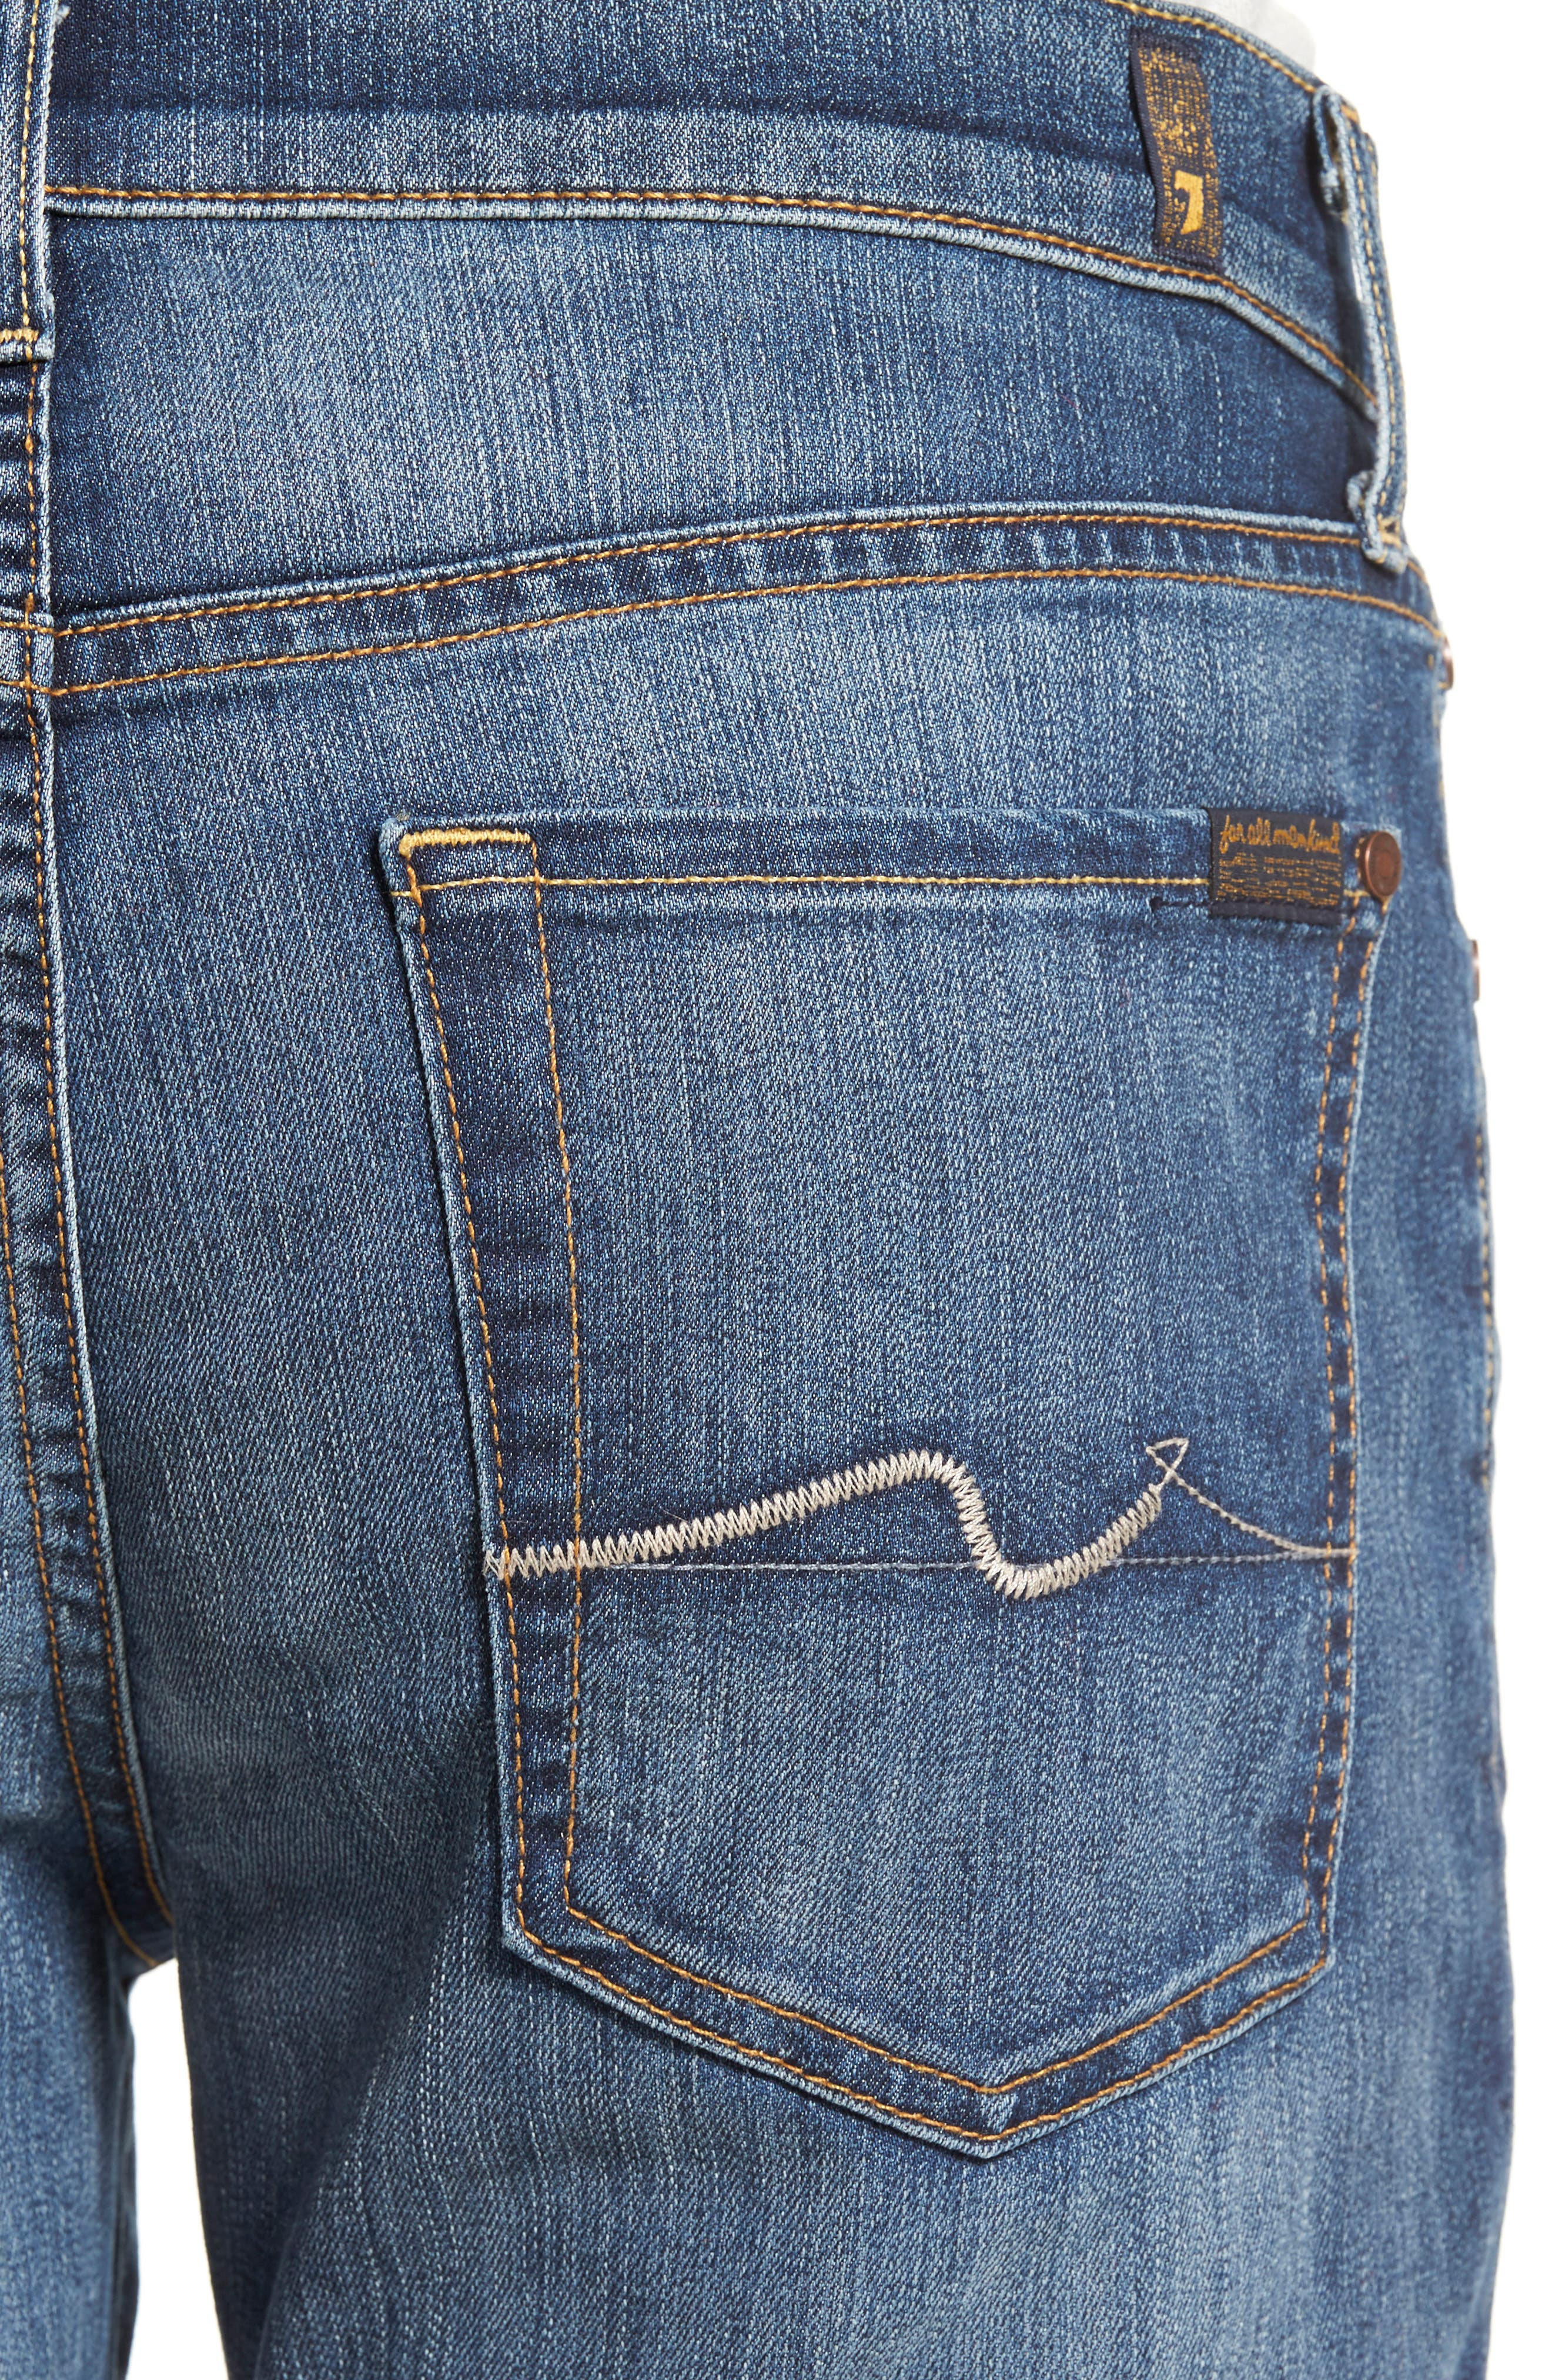 'Slimmy - Luxe Performance' Slim Fit Jeans,                             Alternate thumbnail 4, color,                             AIR WEFT COMMOTION